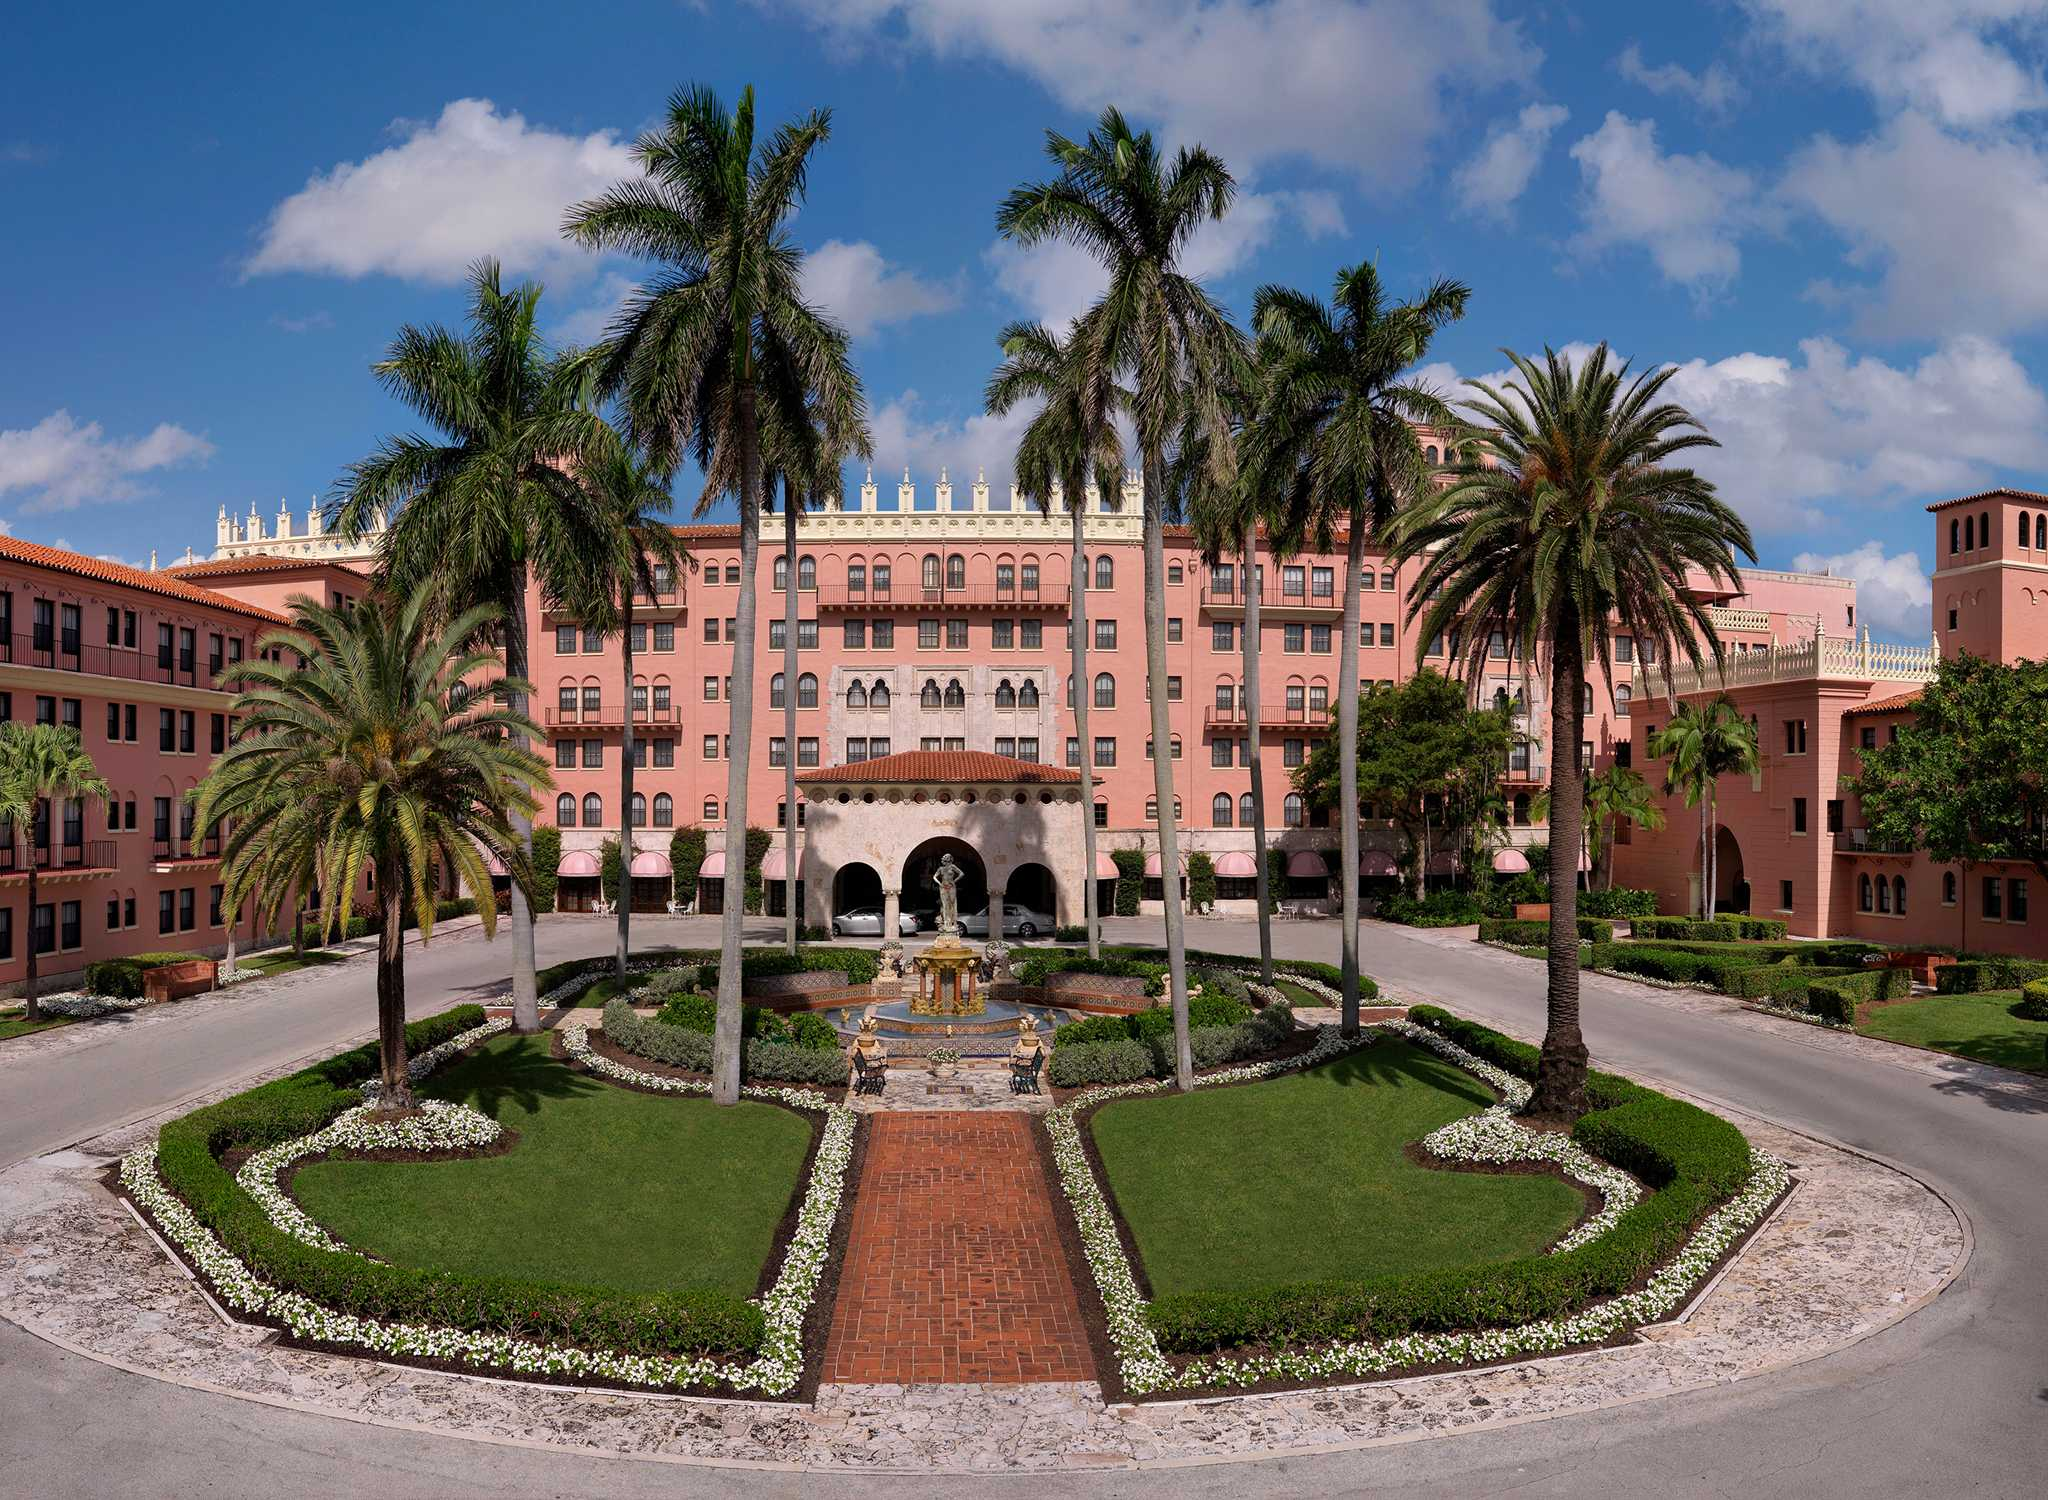 Boca Raton Resort & Club, A Waldorf Astoria Resort